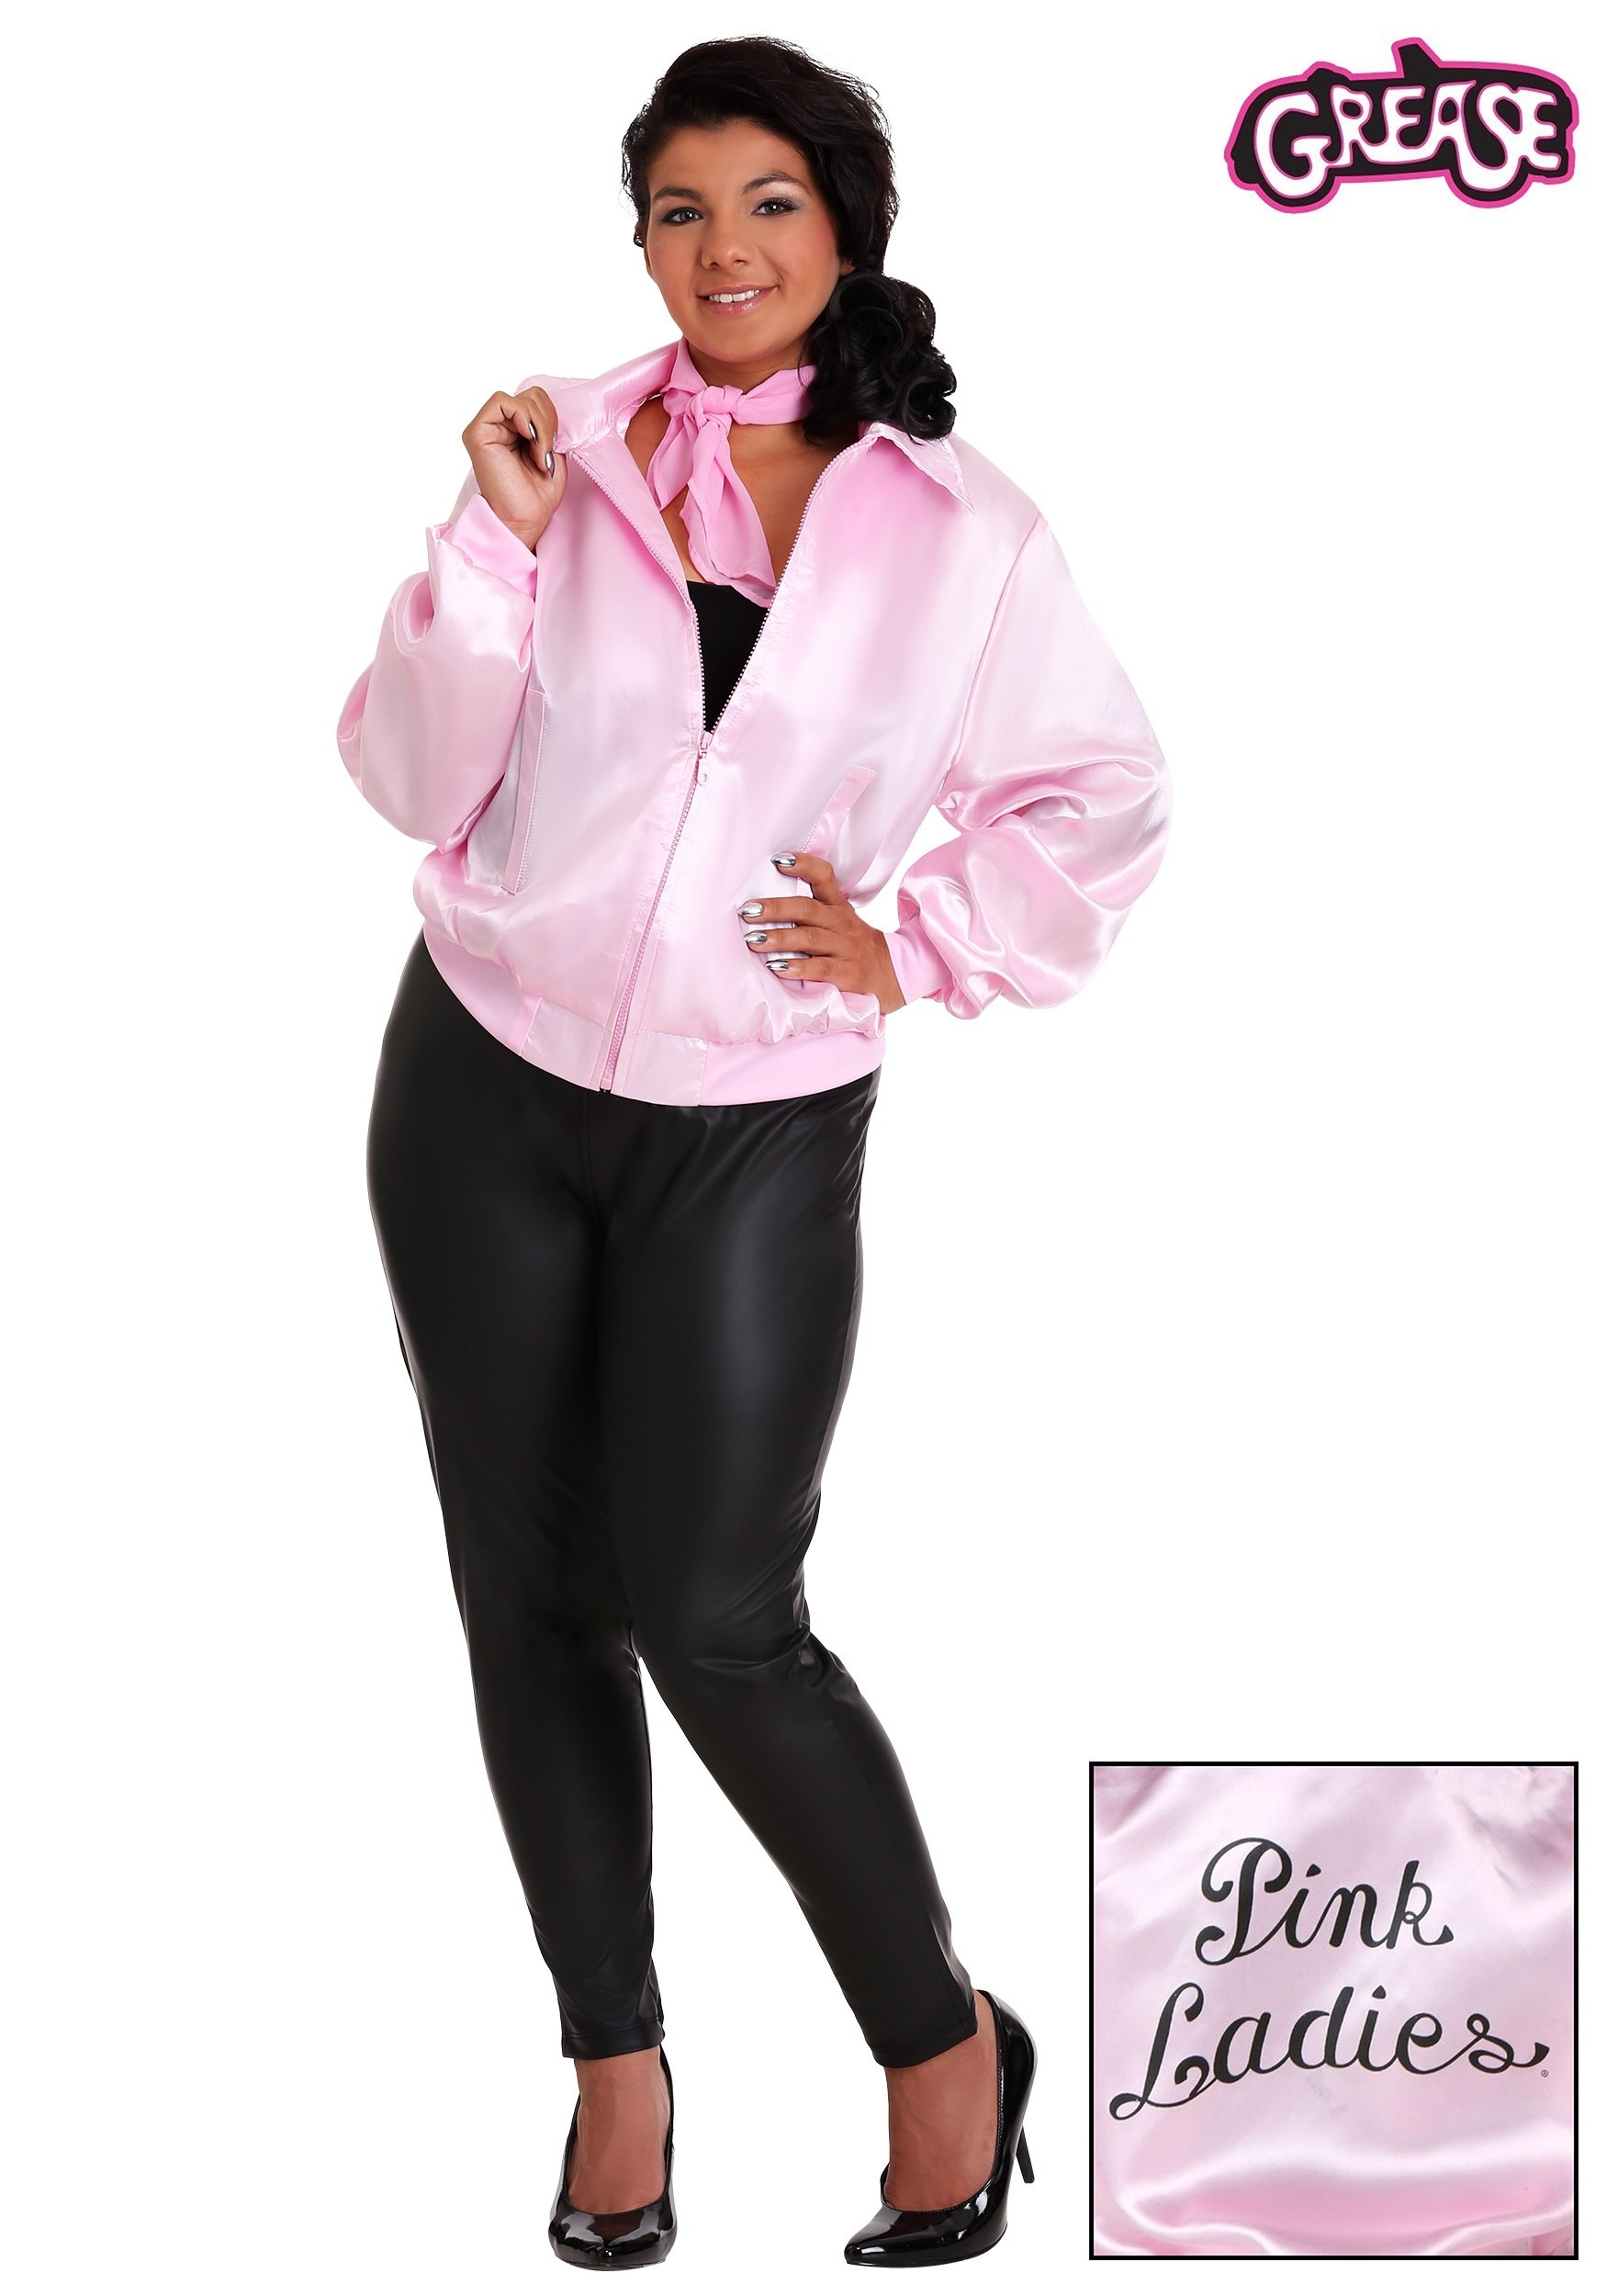 Grease Plus Size Pink Ladies Jacket-1213